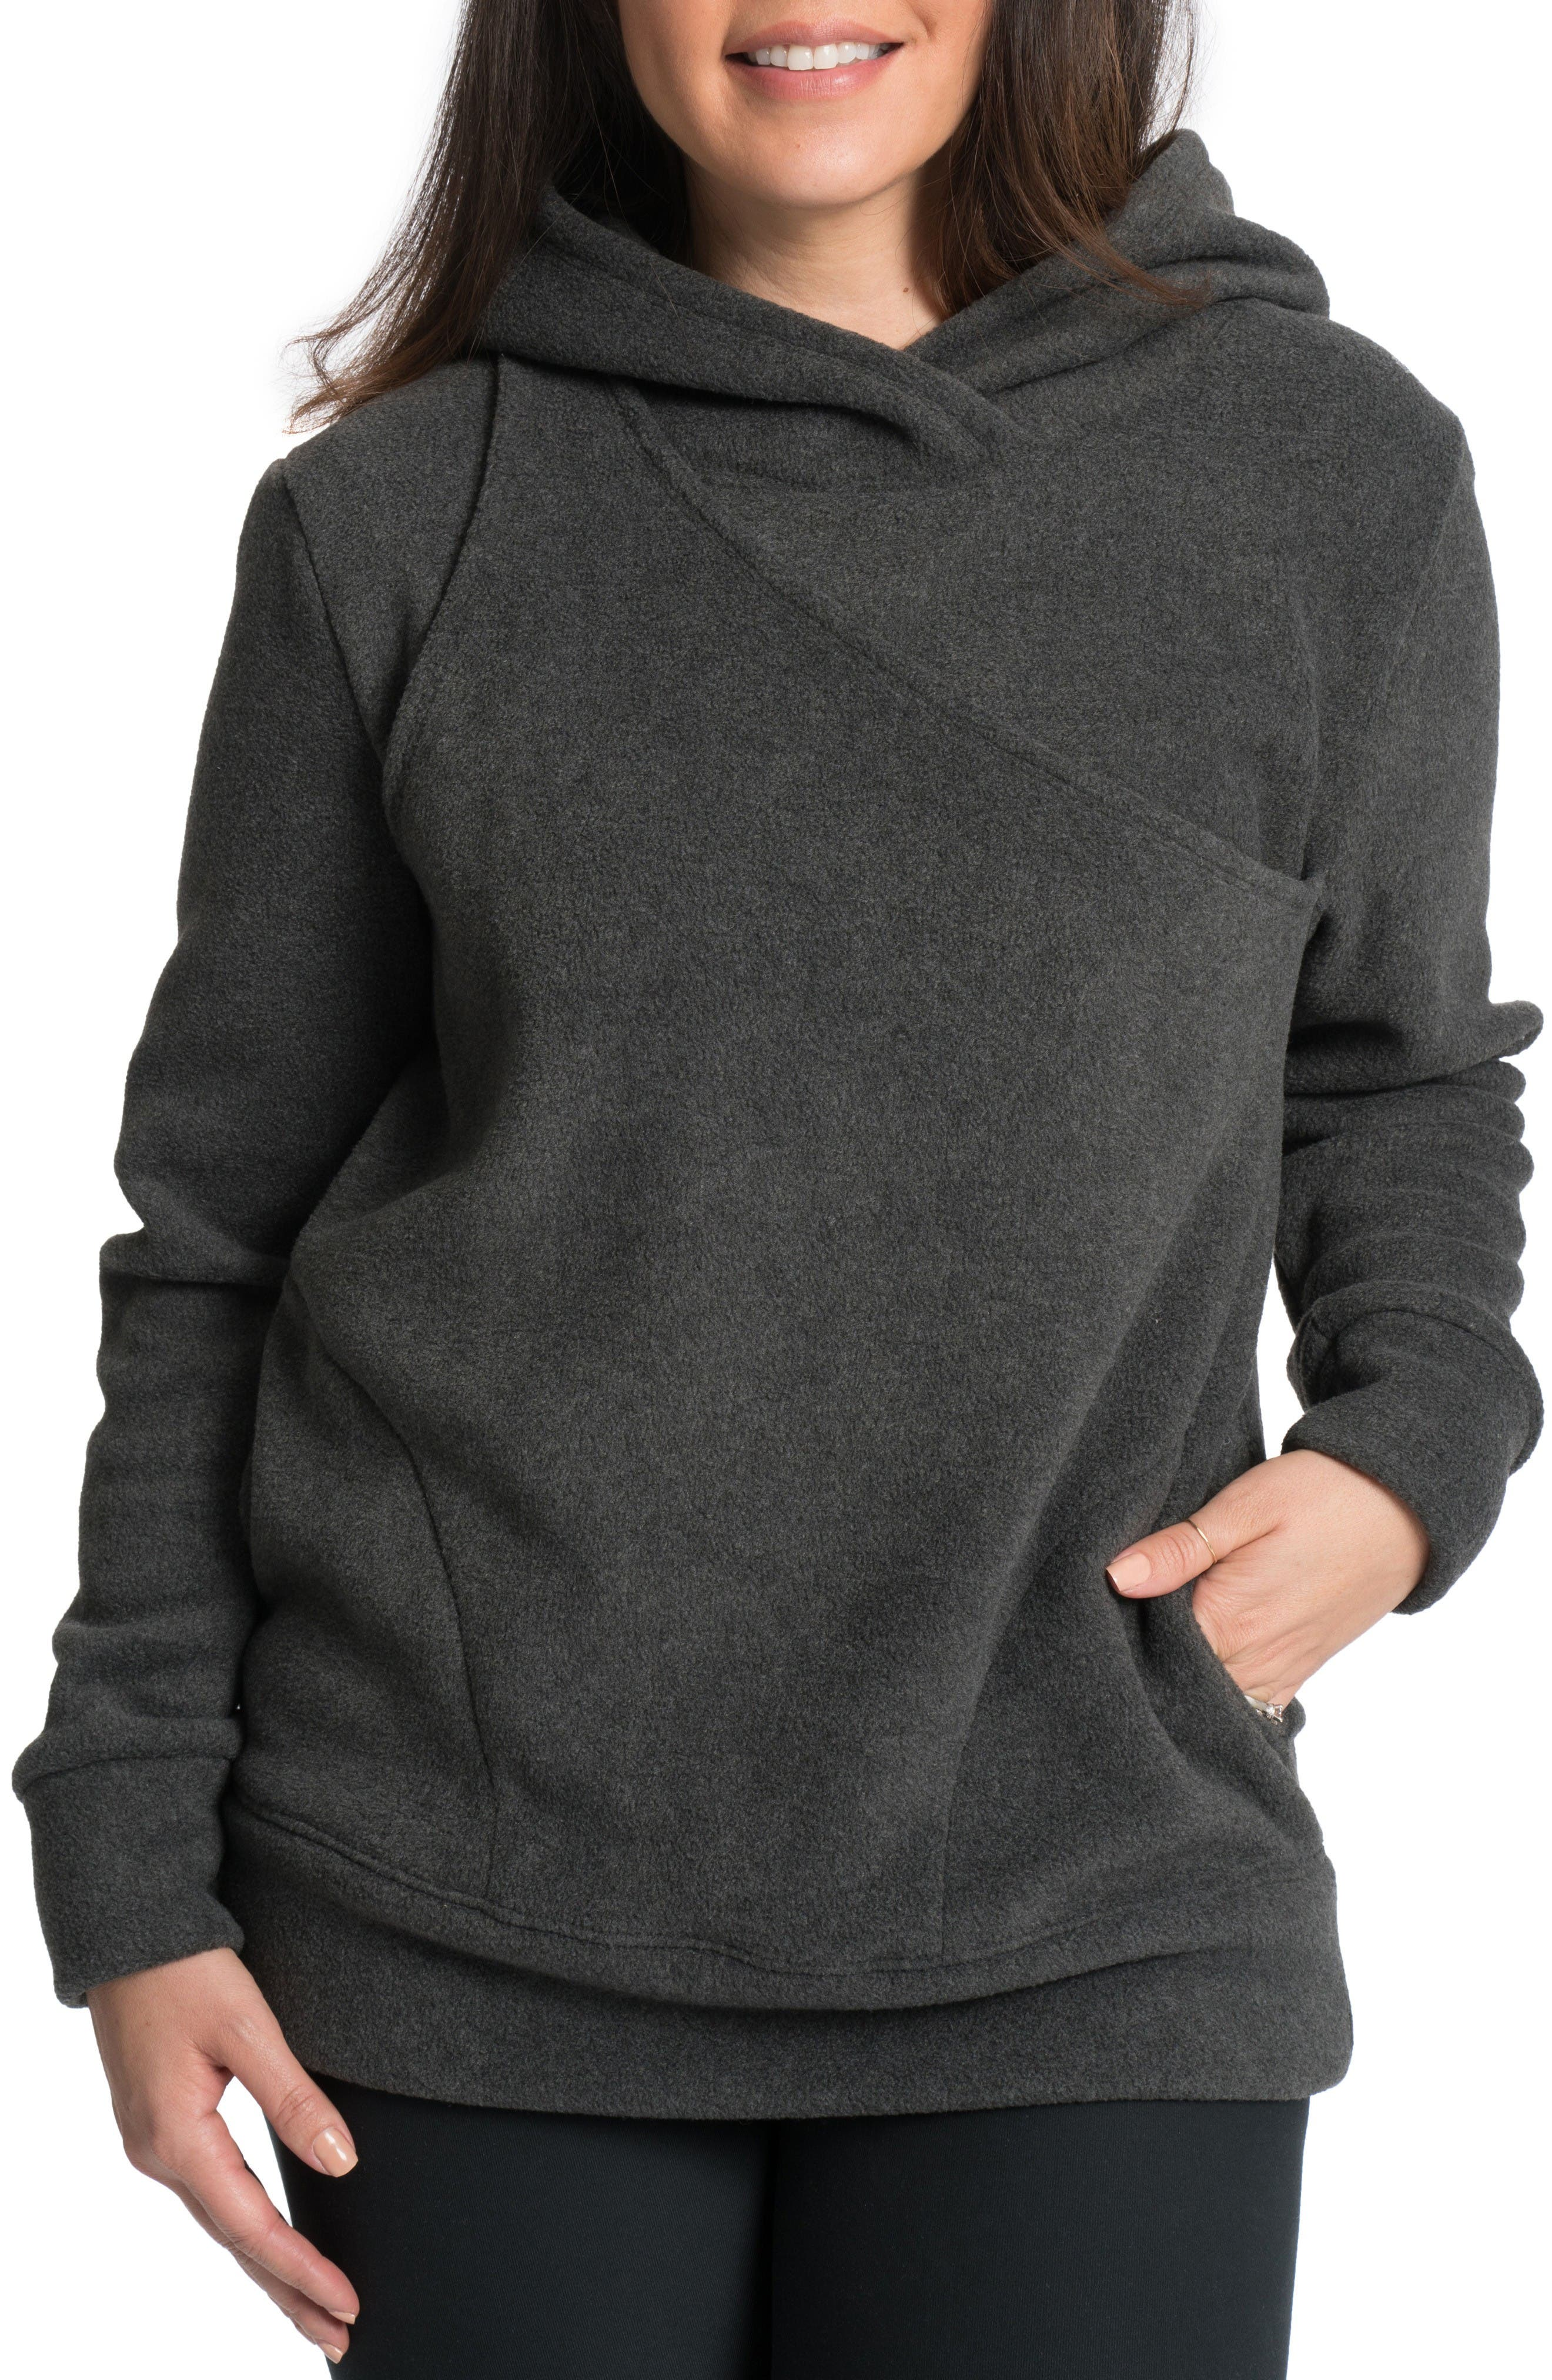 Bun Maternity Warmsie Polar Fleece Nursing Hoodie